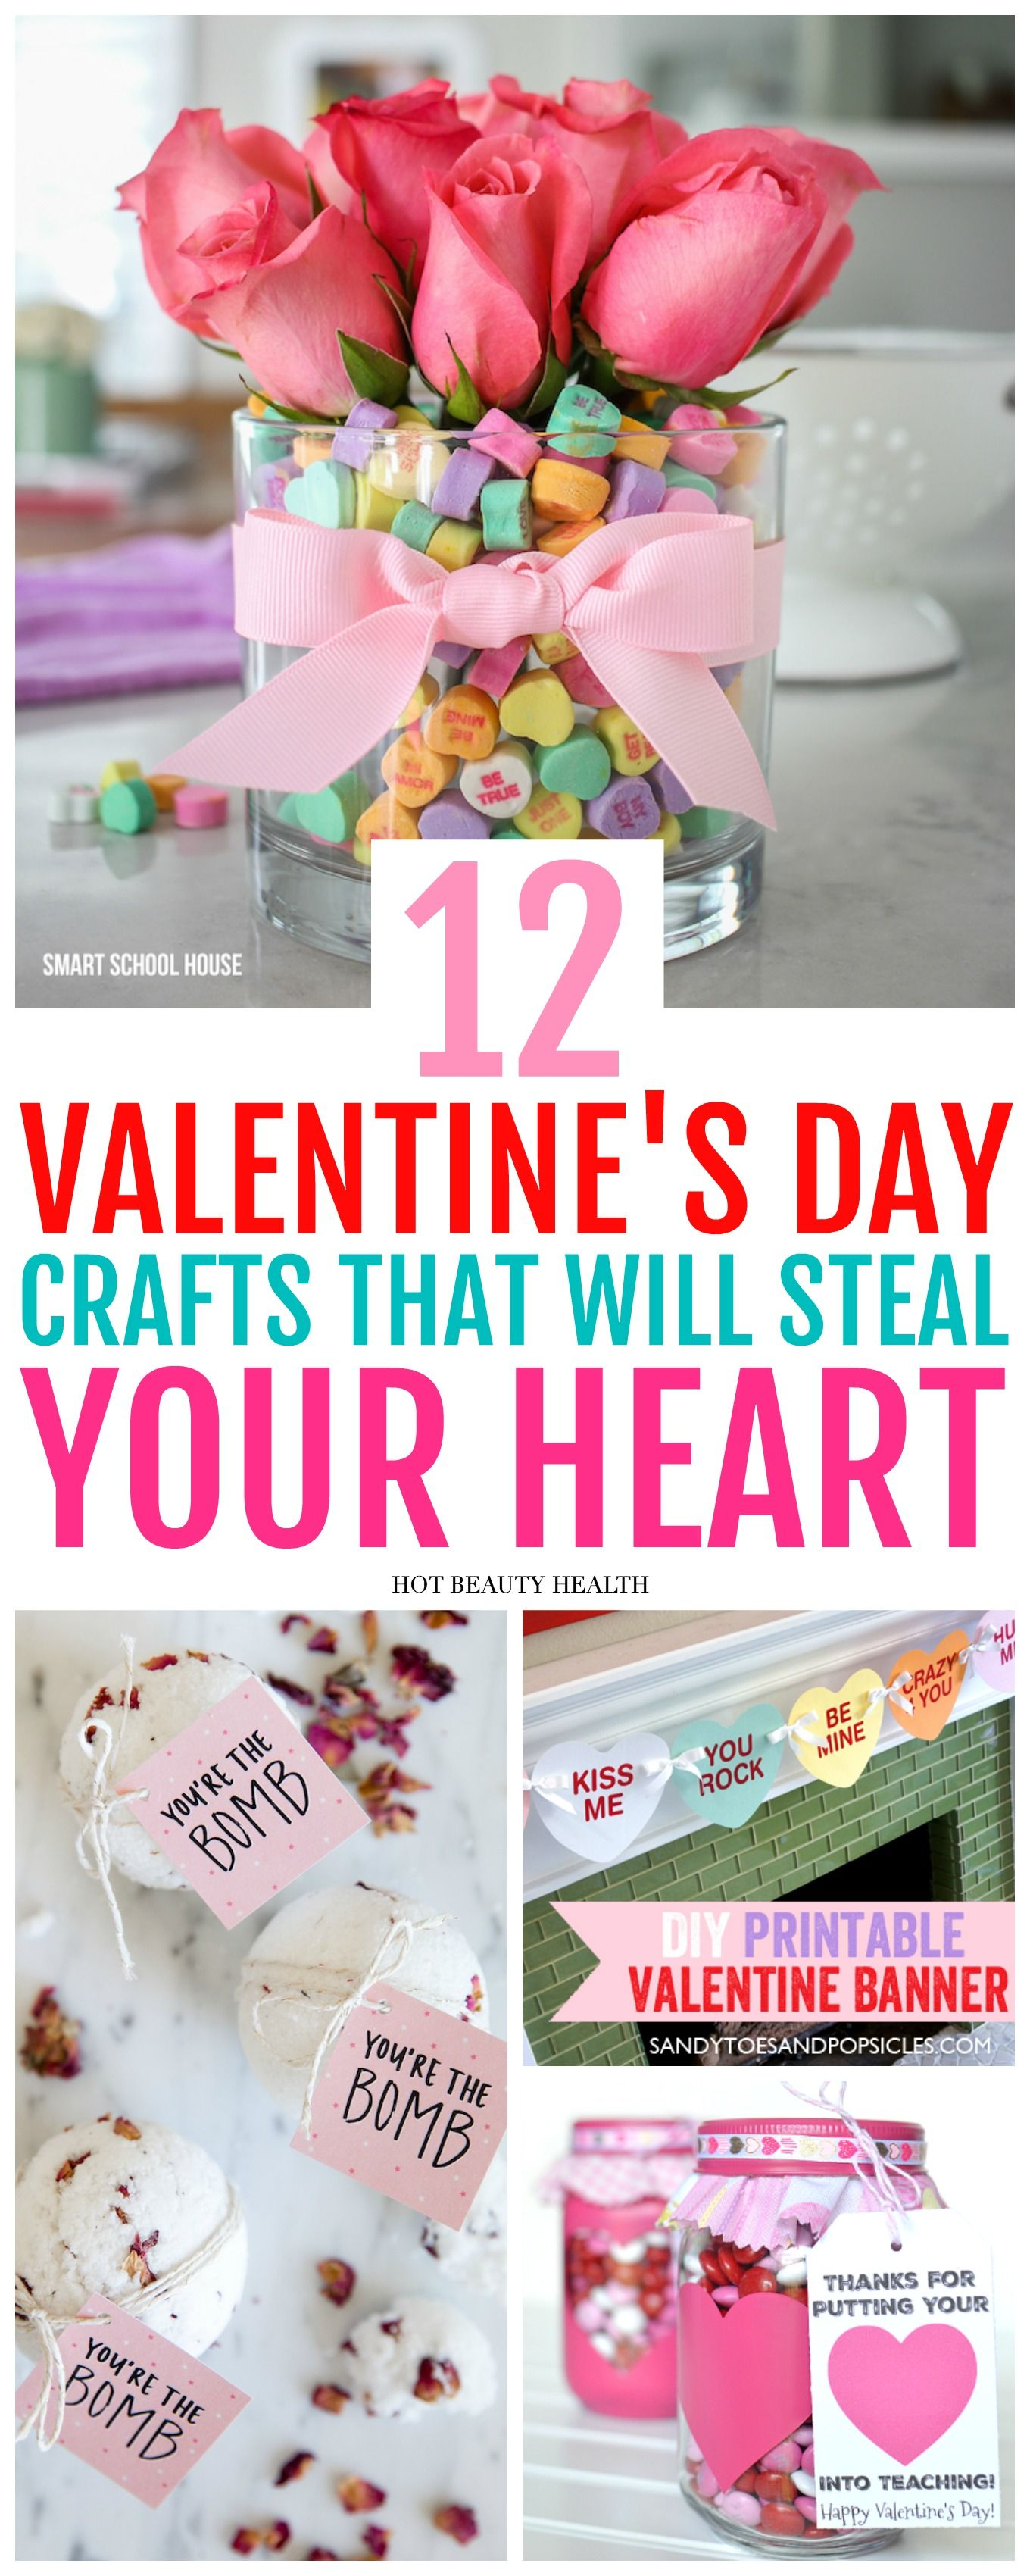 12 Diy Valentine S Day Projects To Create Hot Beauty Health Valentines Diy Valentine S Day Diy Valentine Day Crafts